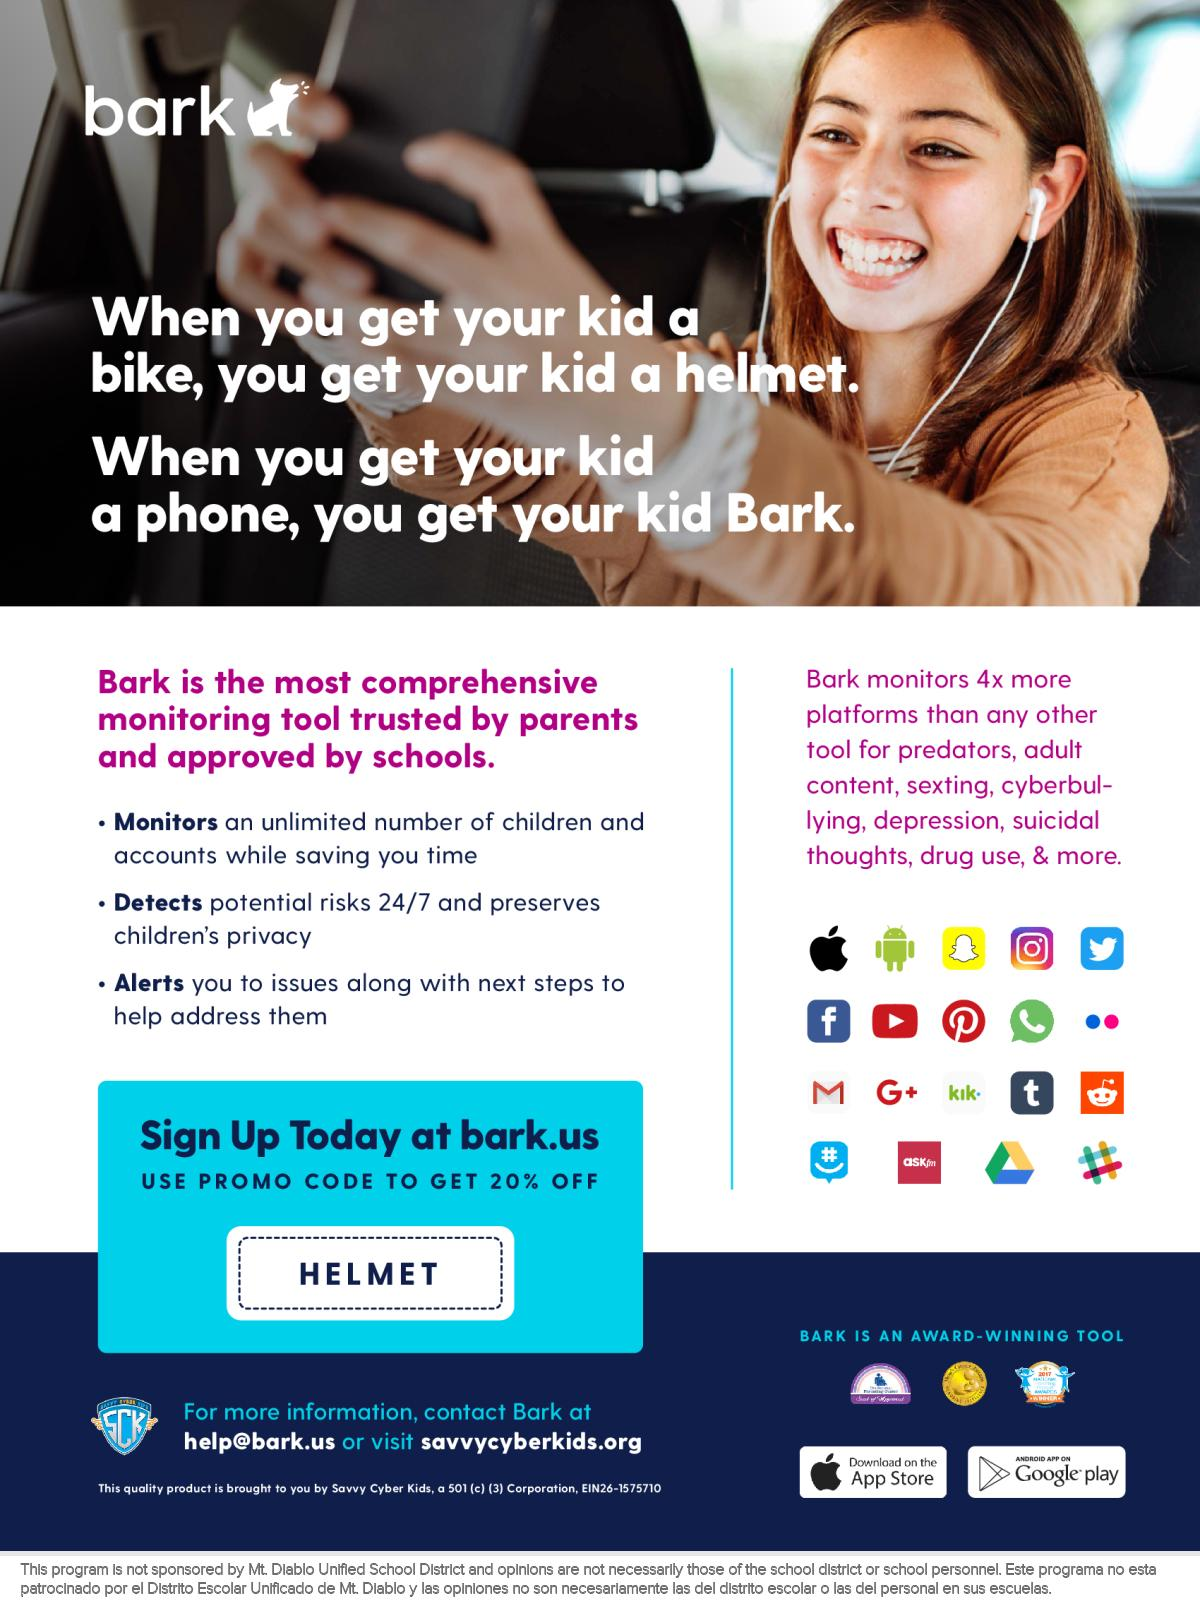 Image of a flyer titled Check out the smart way to keep your kids safer online